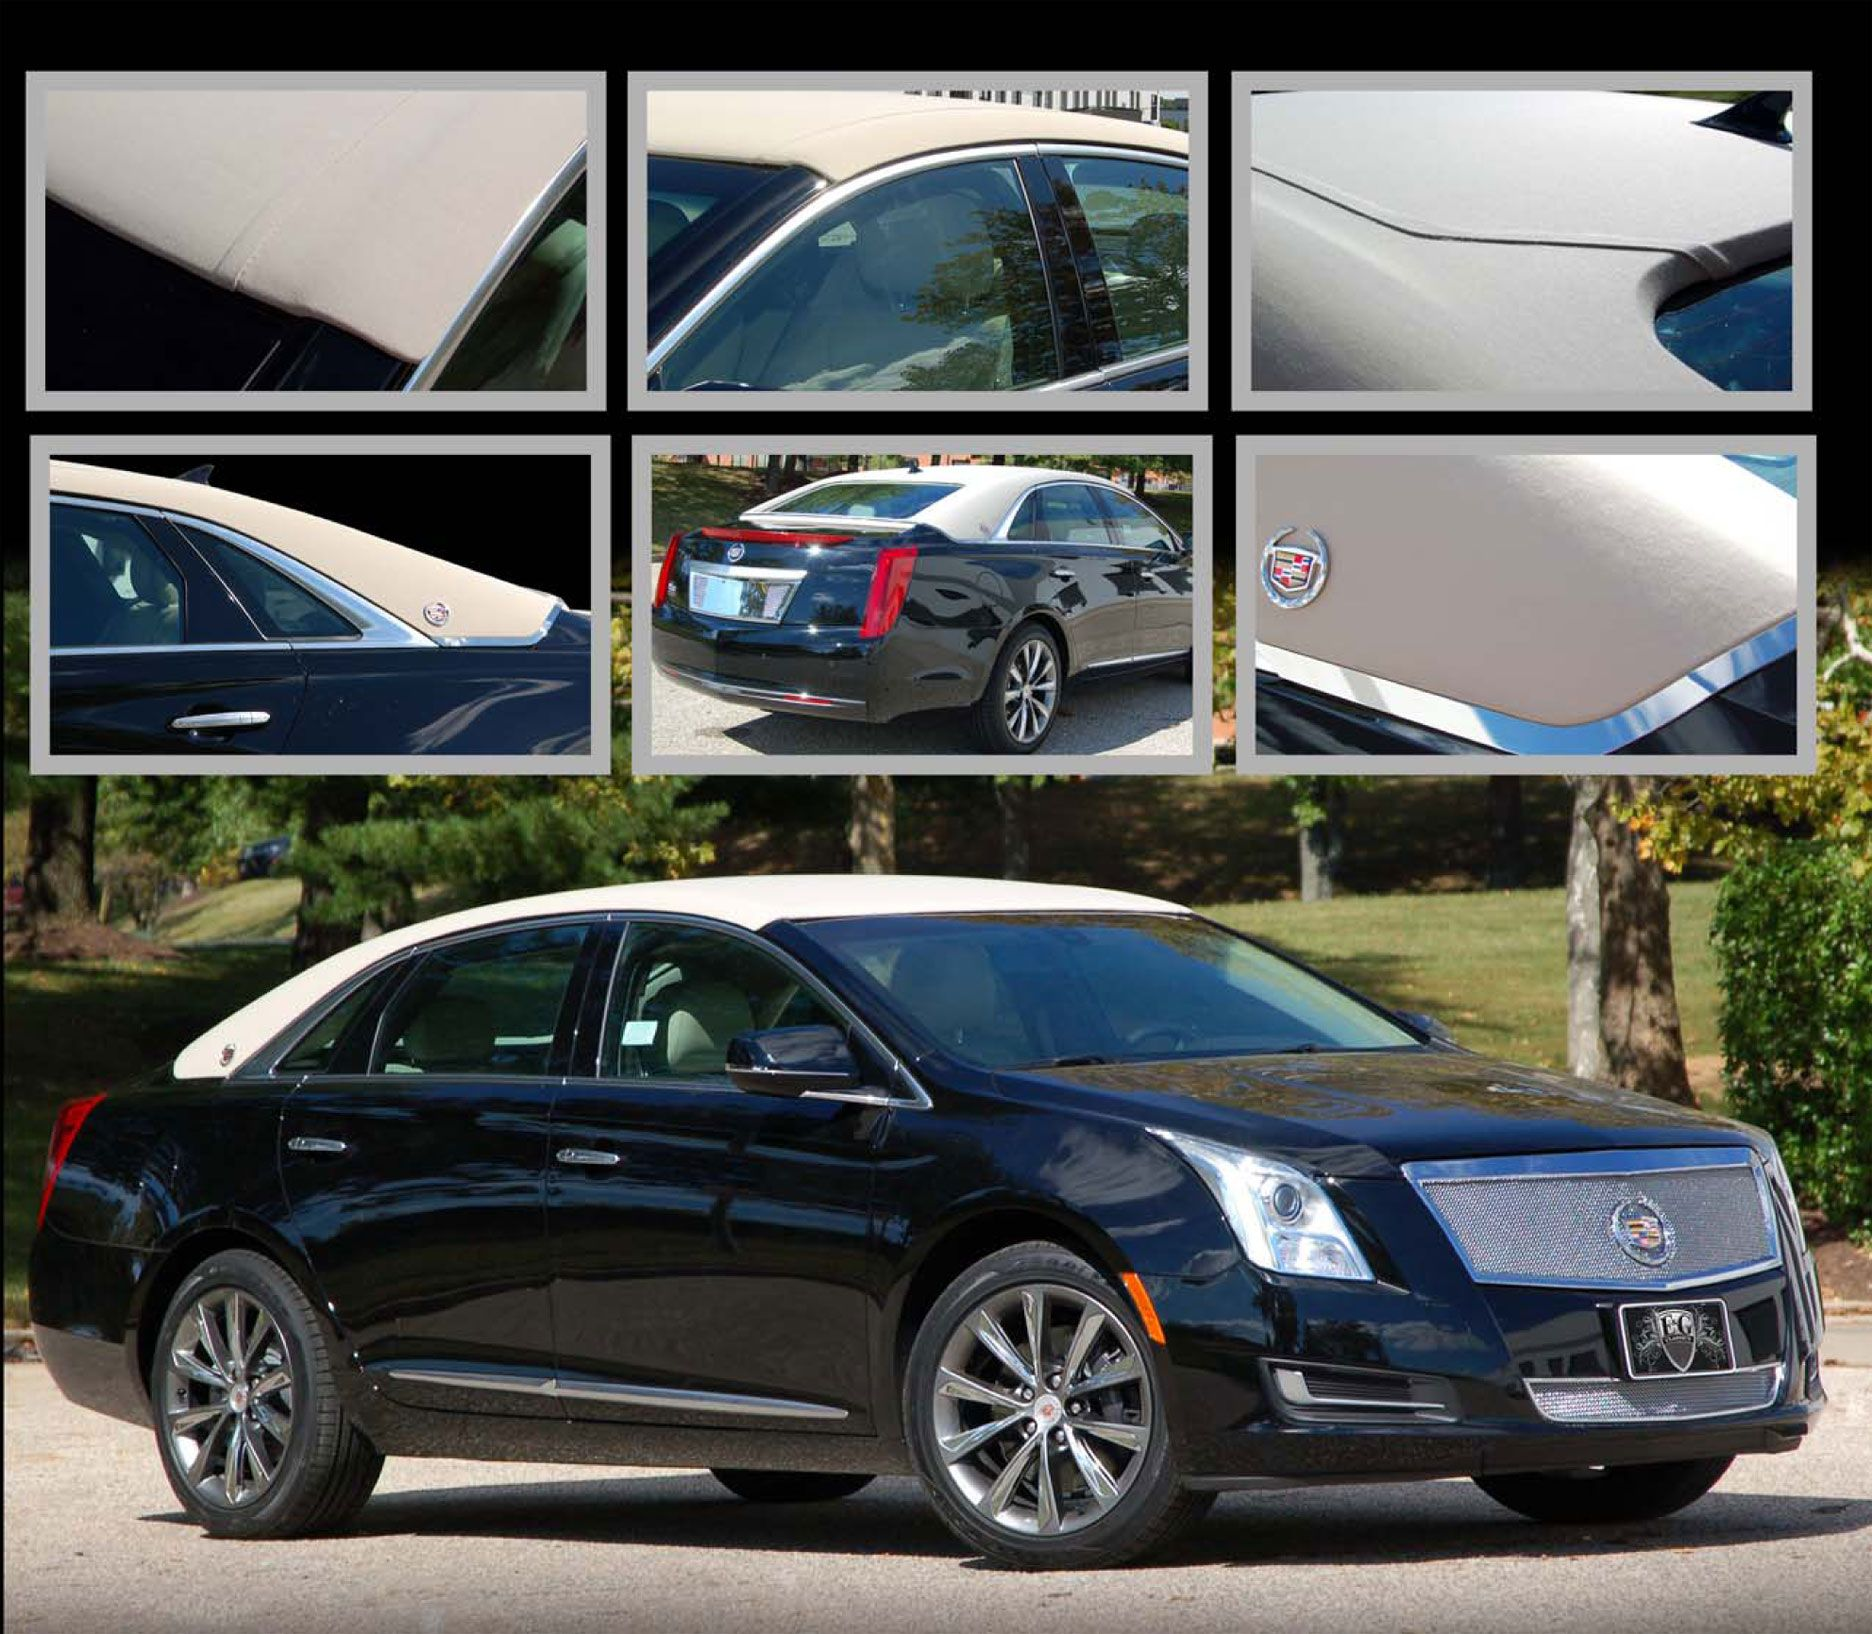 Eg classics inc news check out our classic full top for the 2013 cadillac xts30